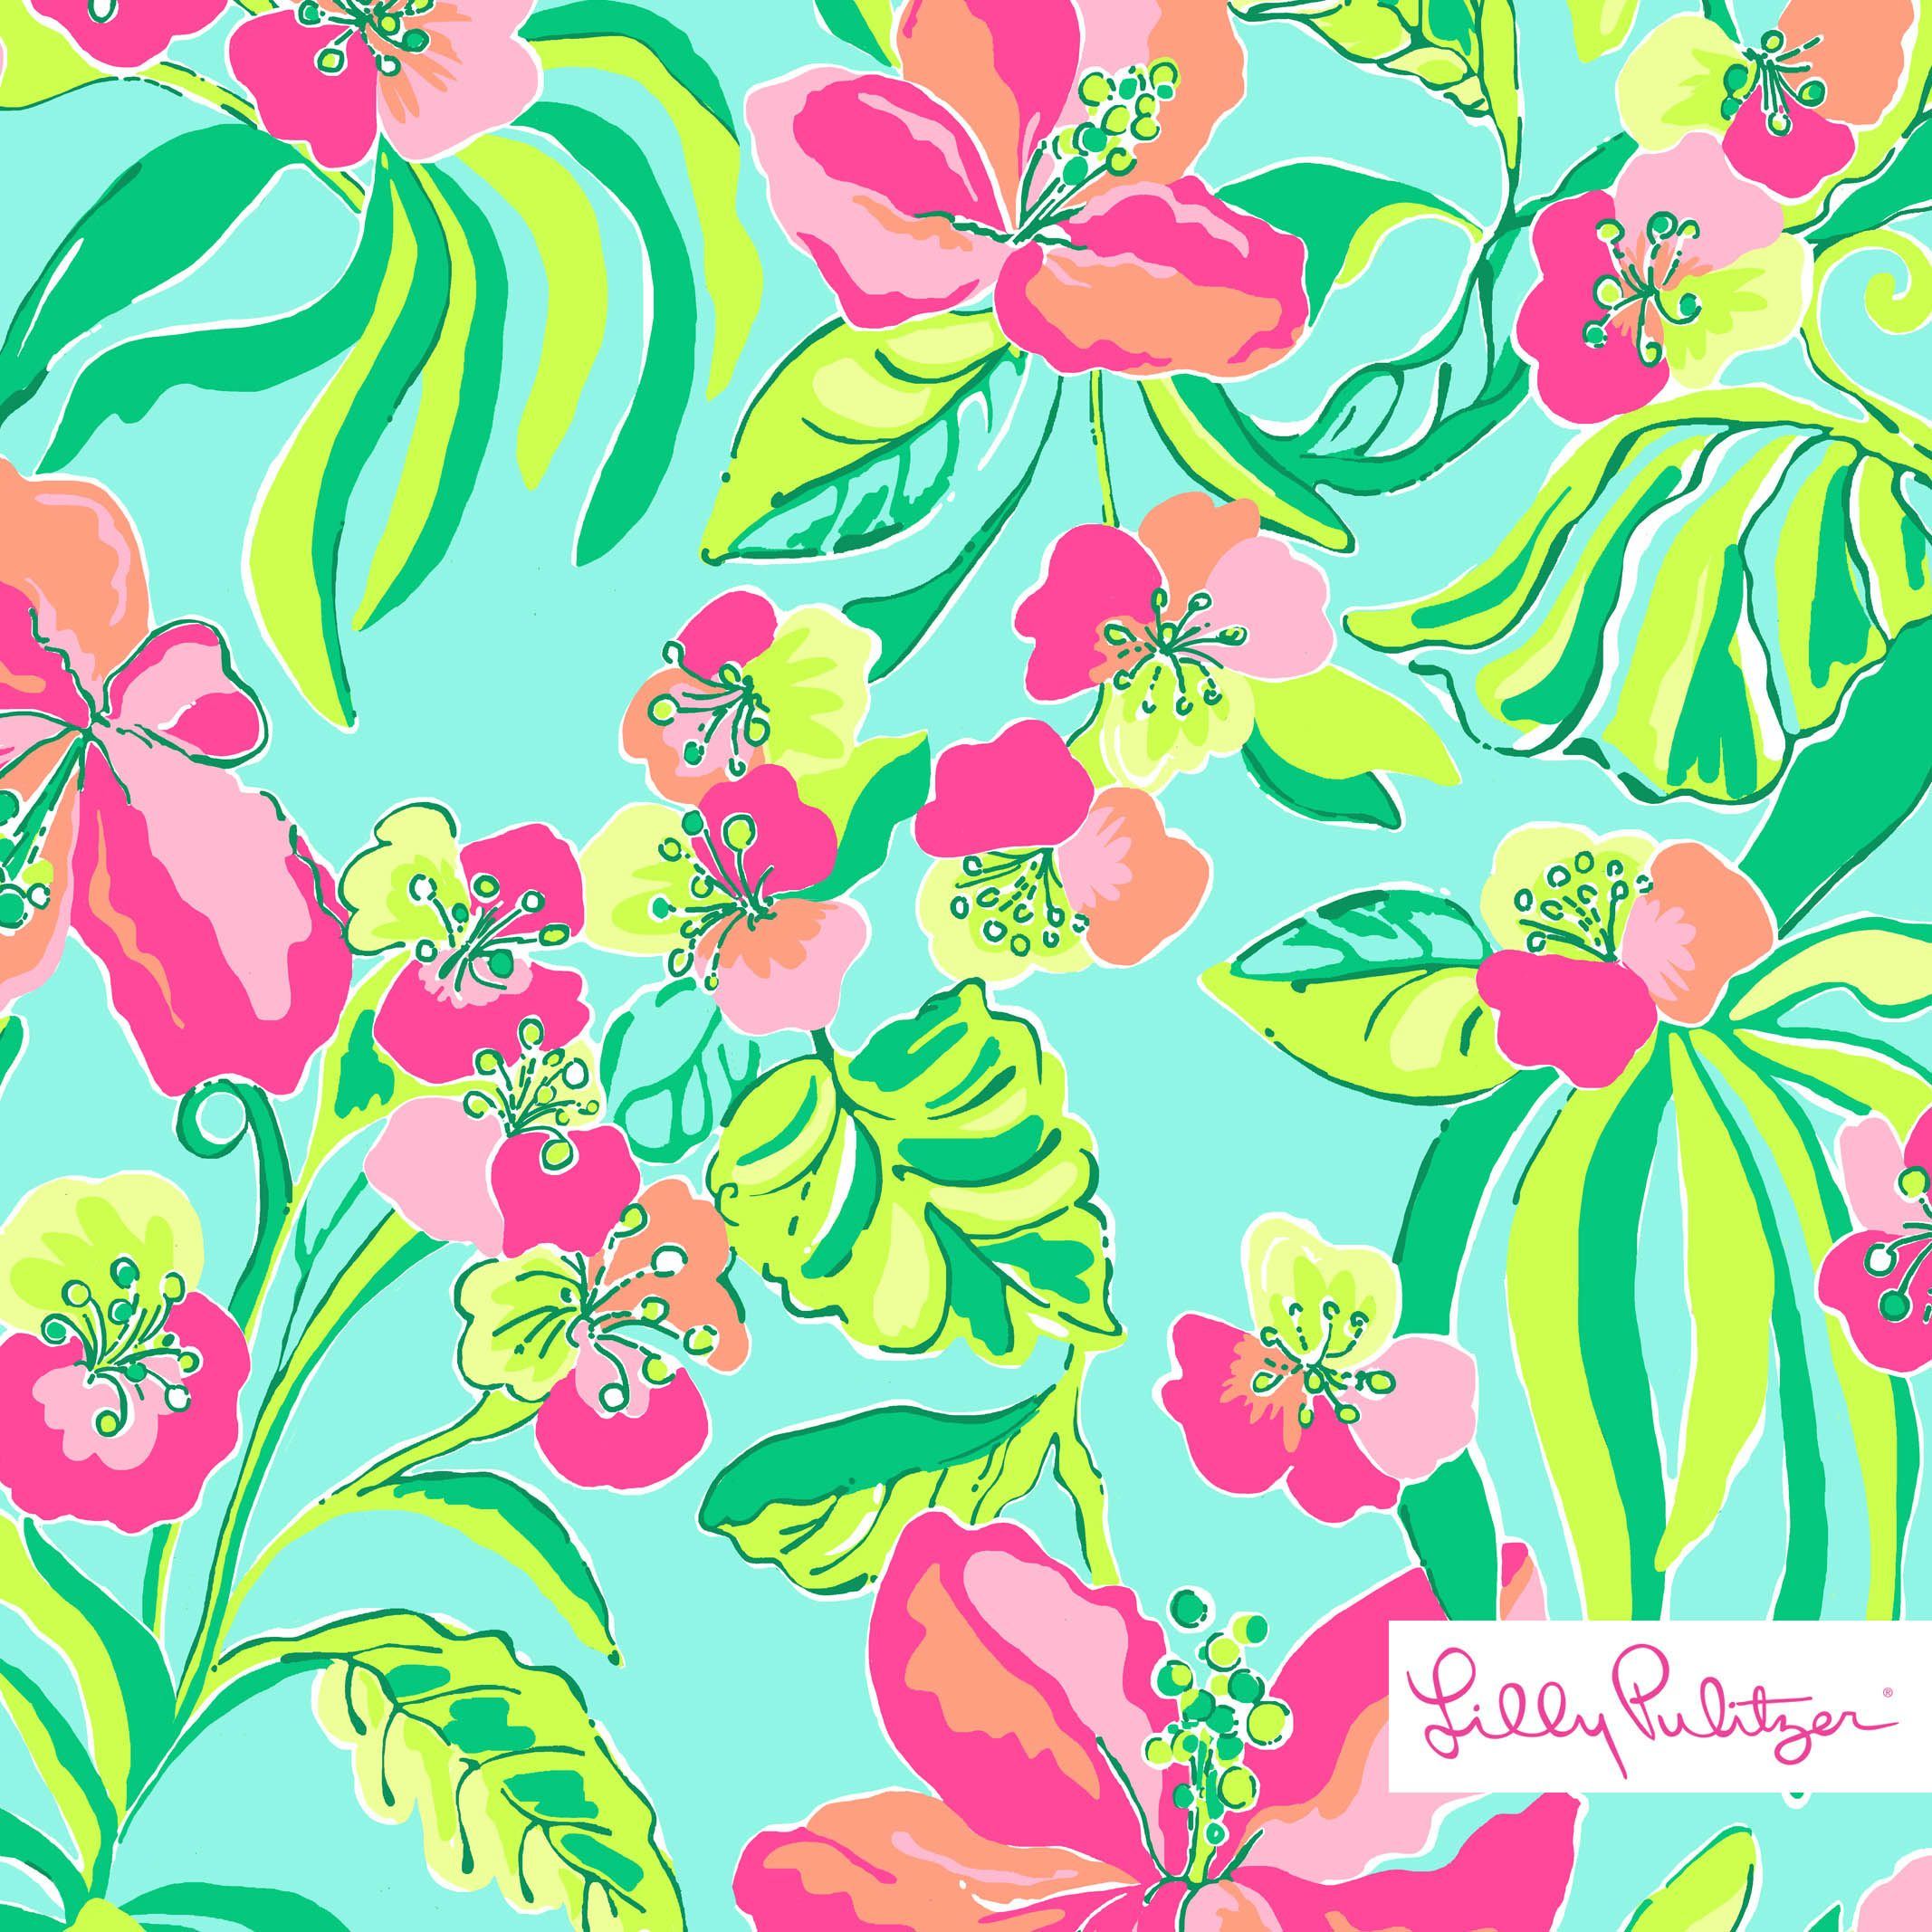 Lilly Pulitzer Fabric Lilly Girls Are Always Picked First Lilly5x5 Lilly 5x5